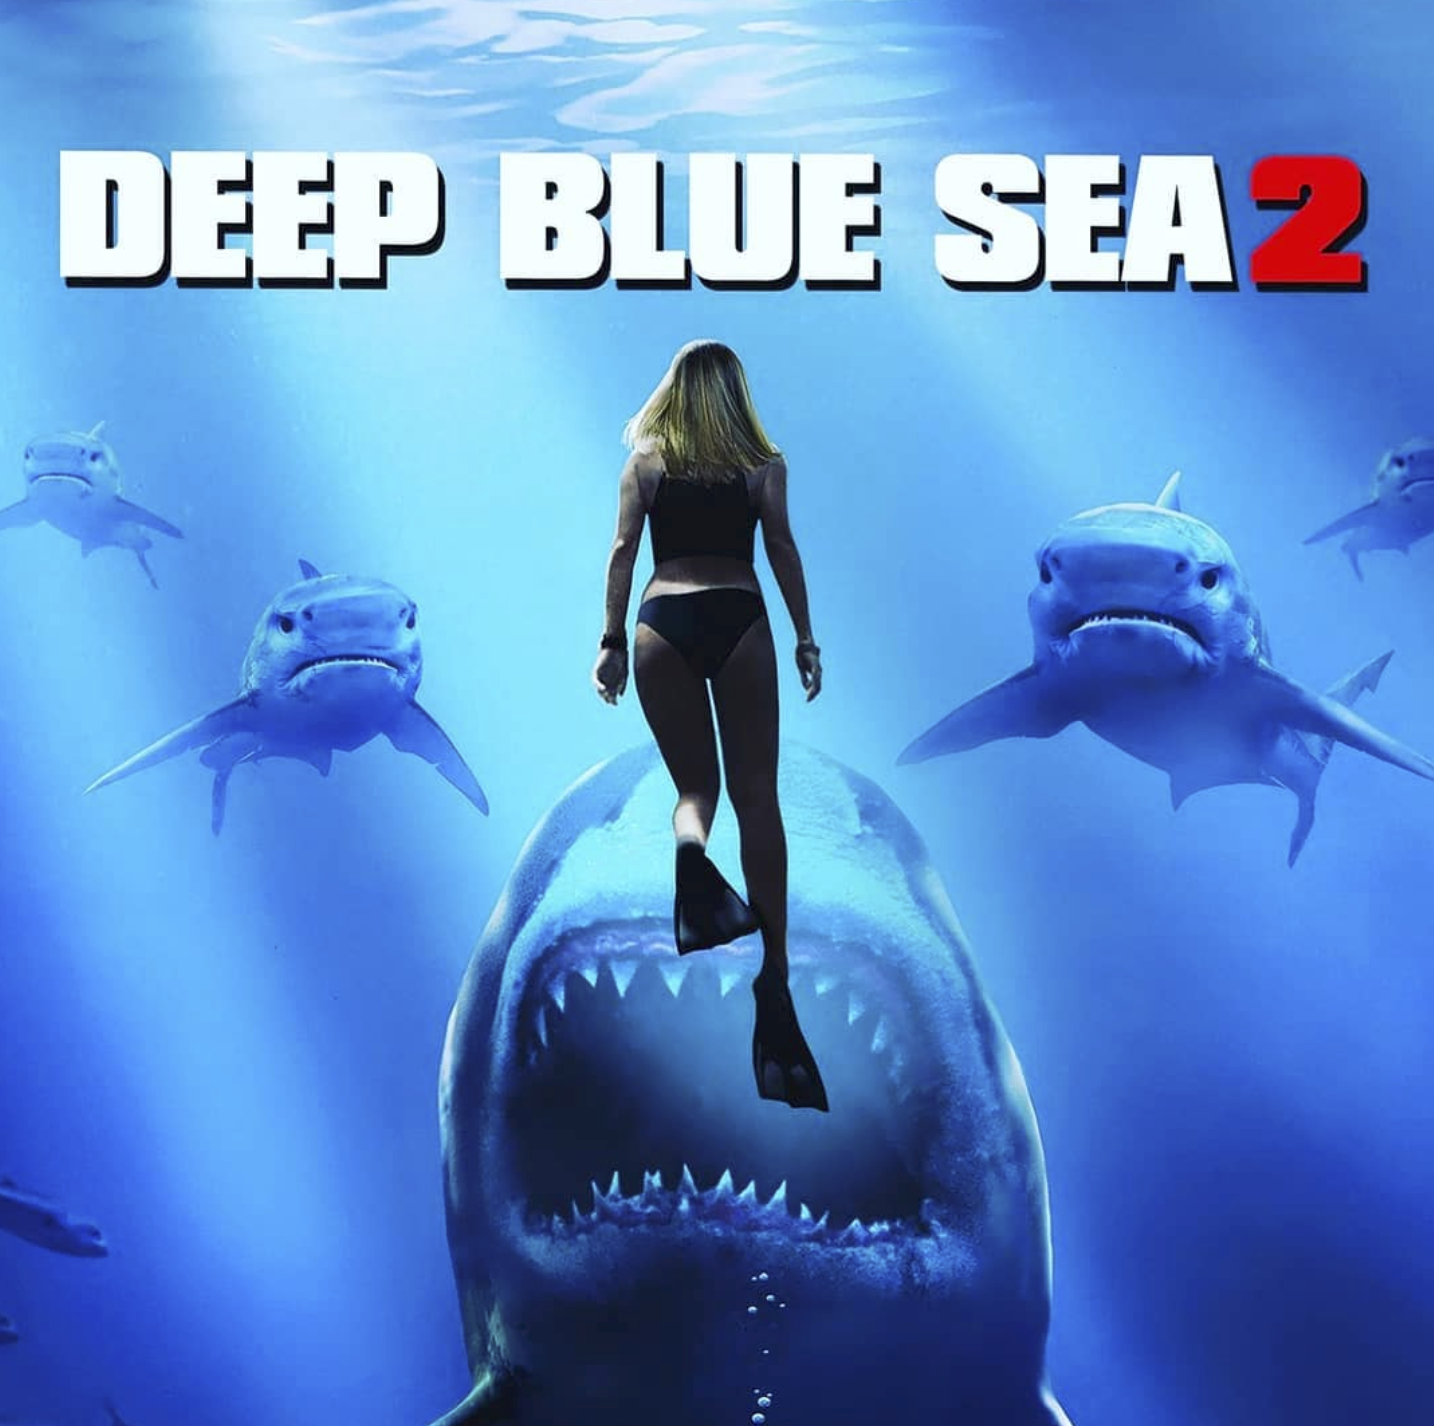 DEEP BLUE SEA 2. MI ÚLTIMO TRABAJO COMO ACTOR Y DIRECTOR DE DOBLAJE